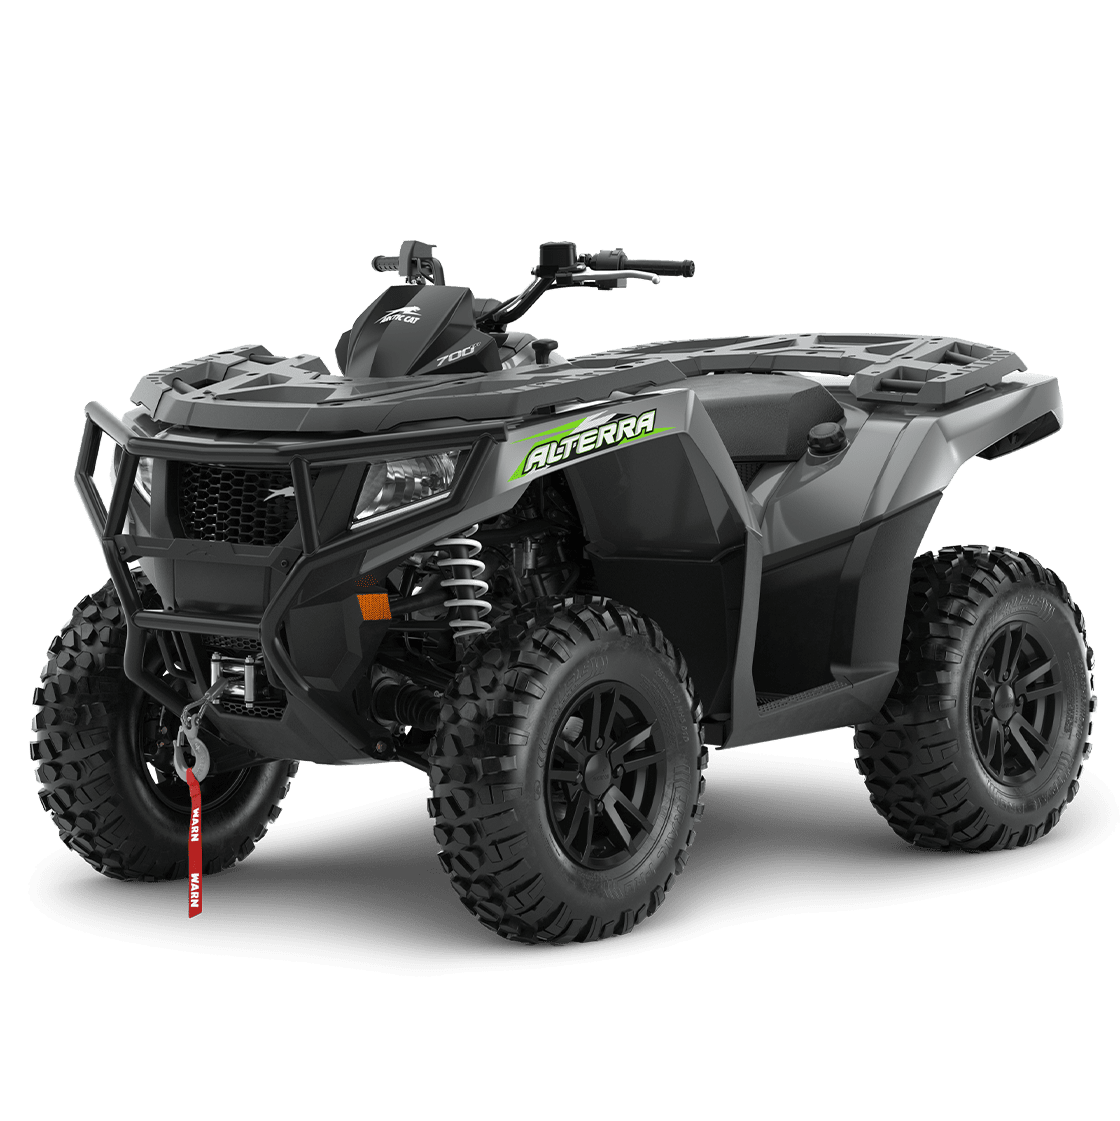 2020 Arctic Cat Alterra700